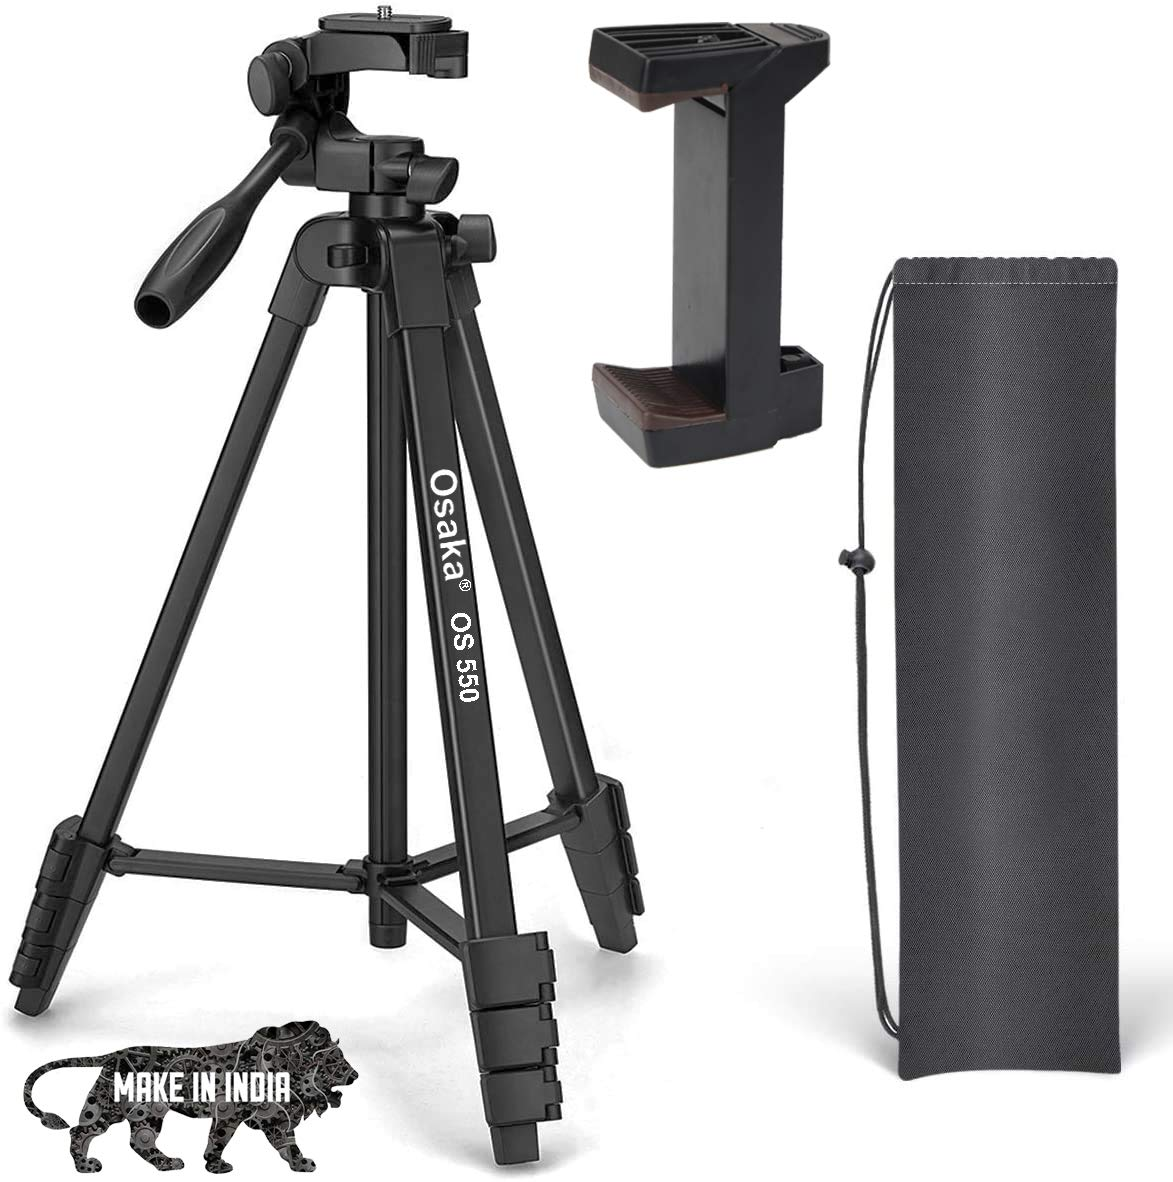 Osaka OS 550 Tripod 55 Inches with Mobile Holder and Carry Case for Smartphone & SLR Camera Portable Lightweight Aluminium Tripod